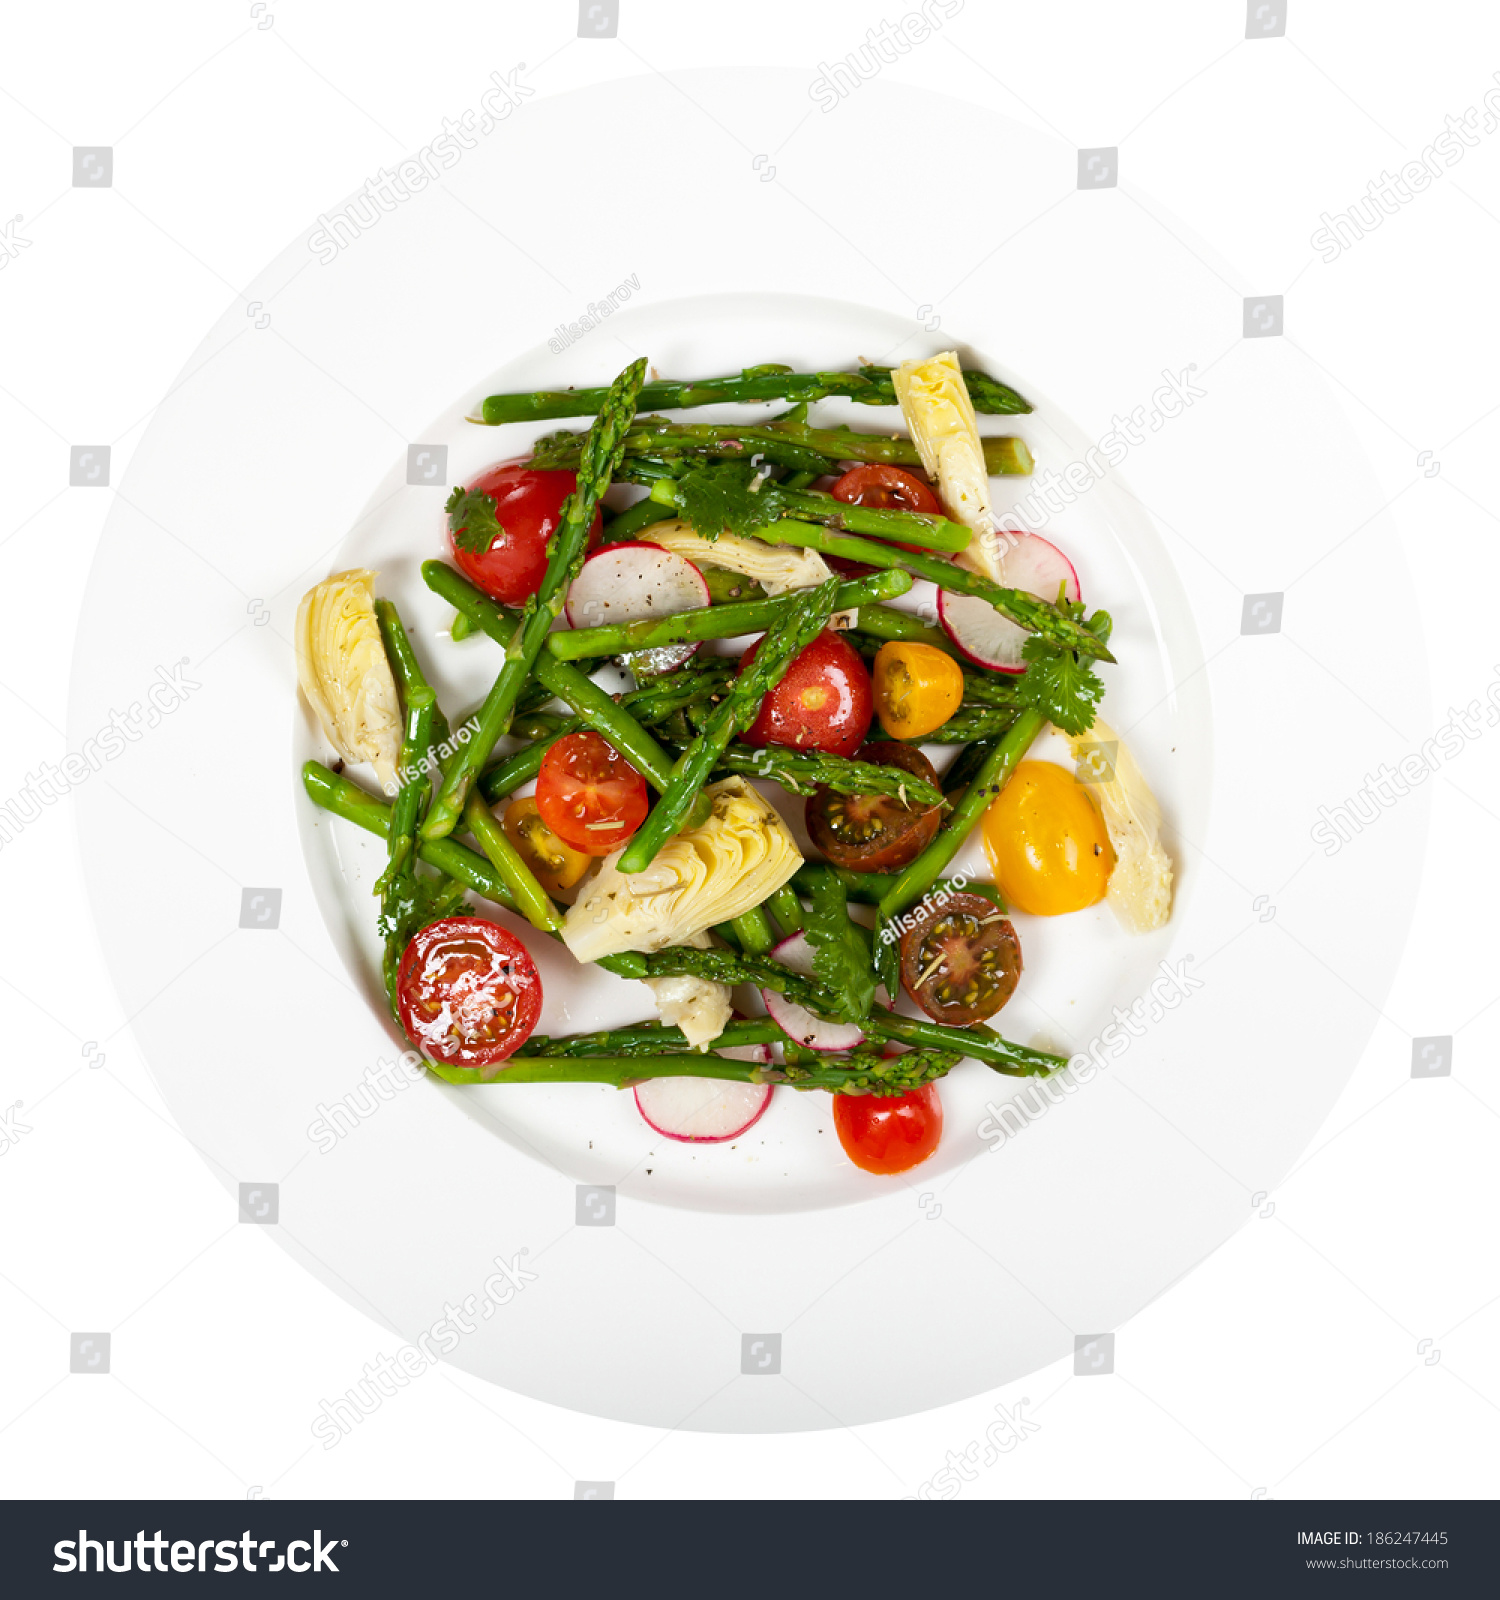 Roasted Asparagus Artichoke Salad Stock Photo 186247445 - Shutterstock